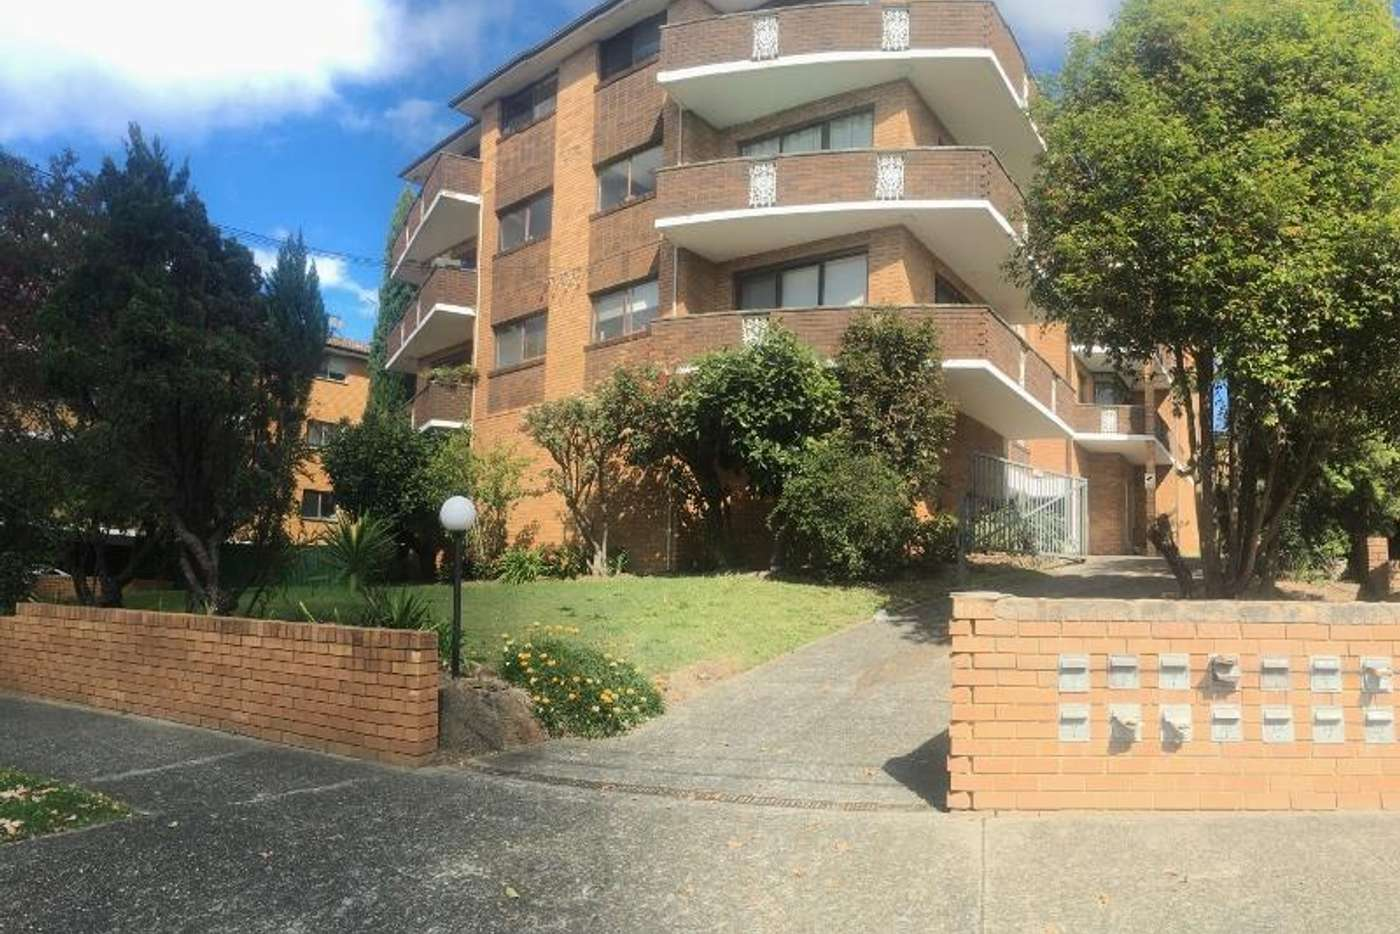 Main view of Homely unit listing, 5/27 Walton Crescent, Abbotsford NSW 2046